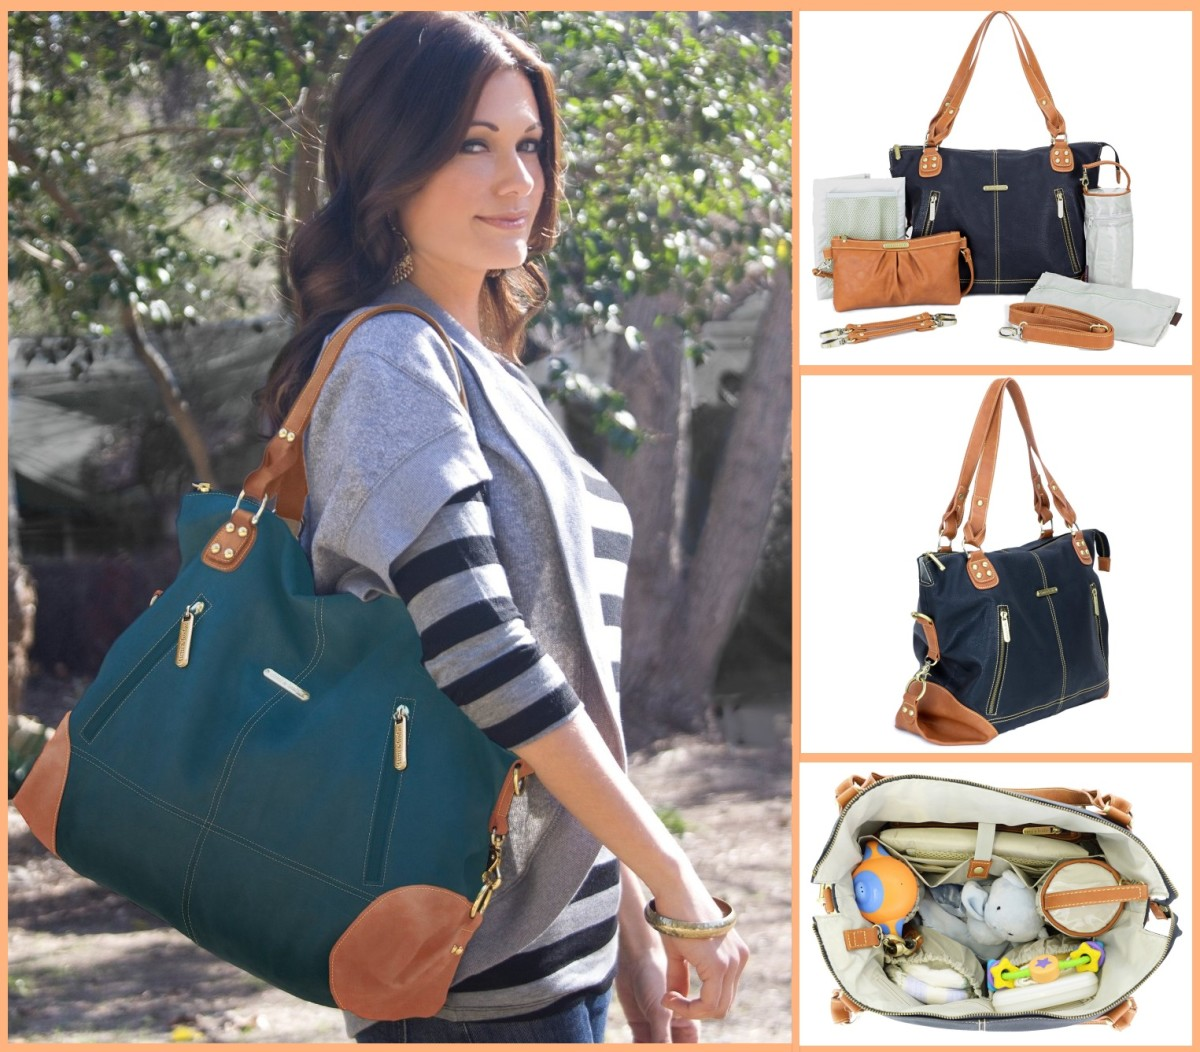 Trendy Modern Baby Diaper Bags - Combining Style & Functionality | 2015 Reviews